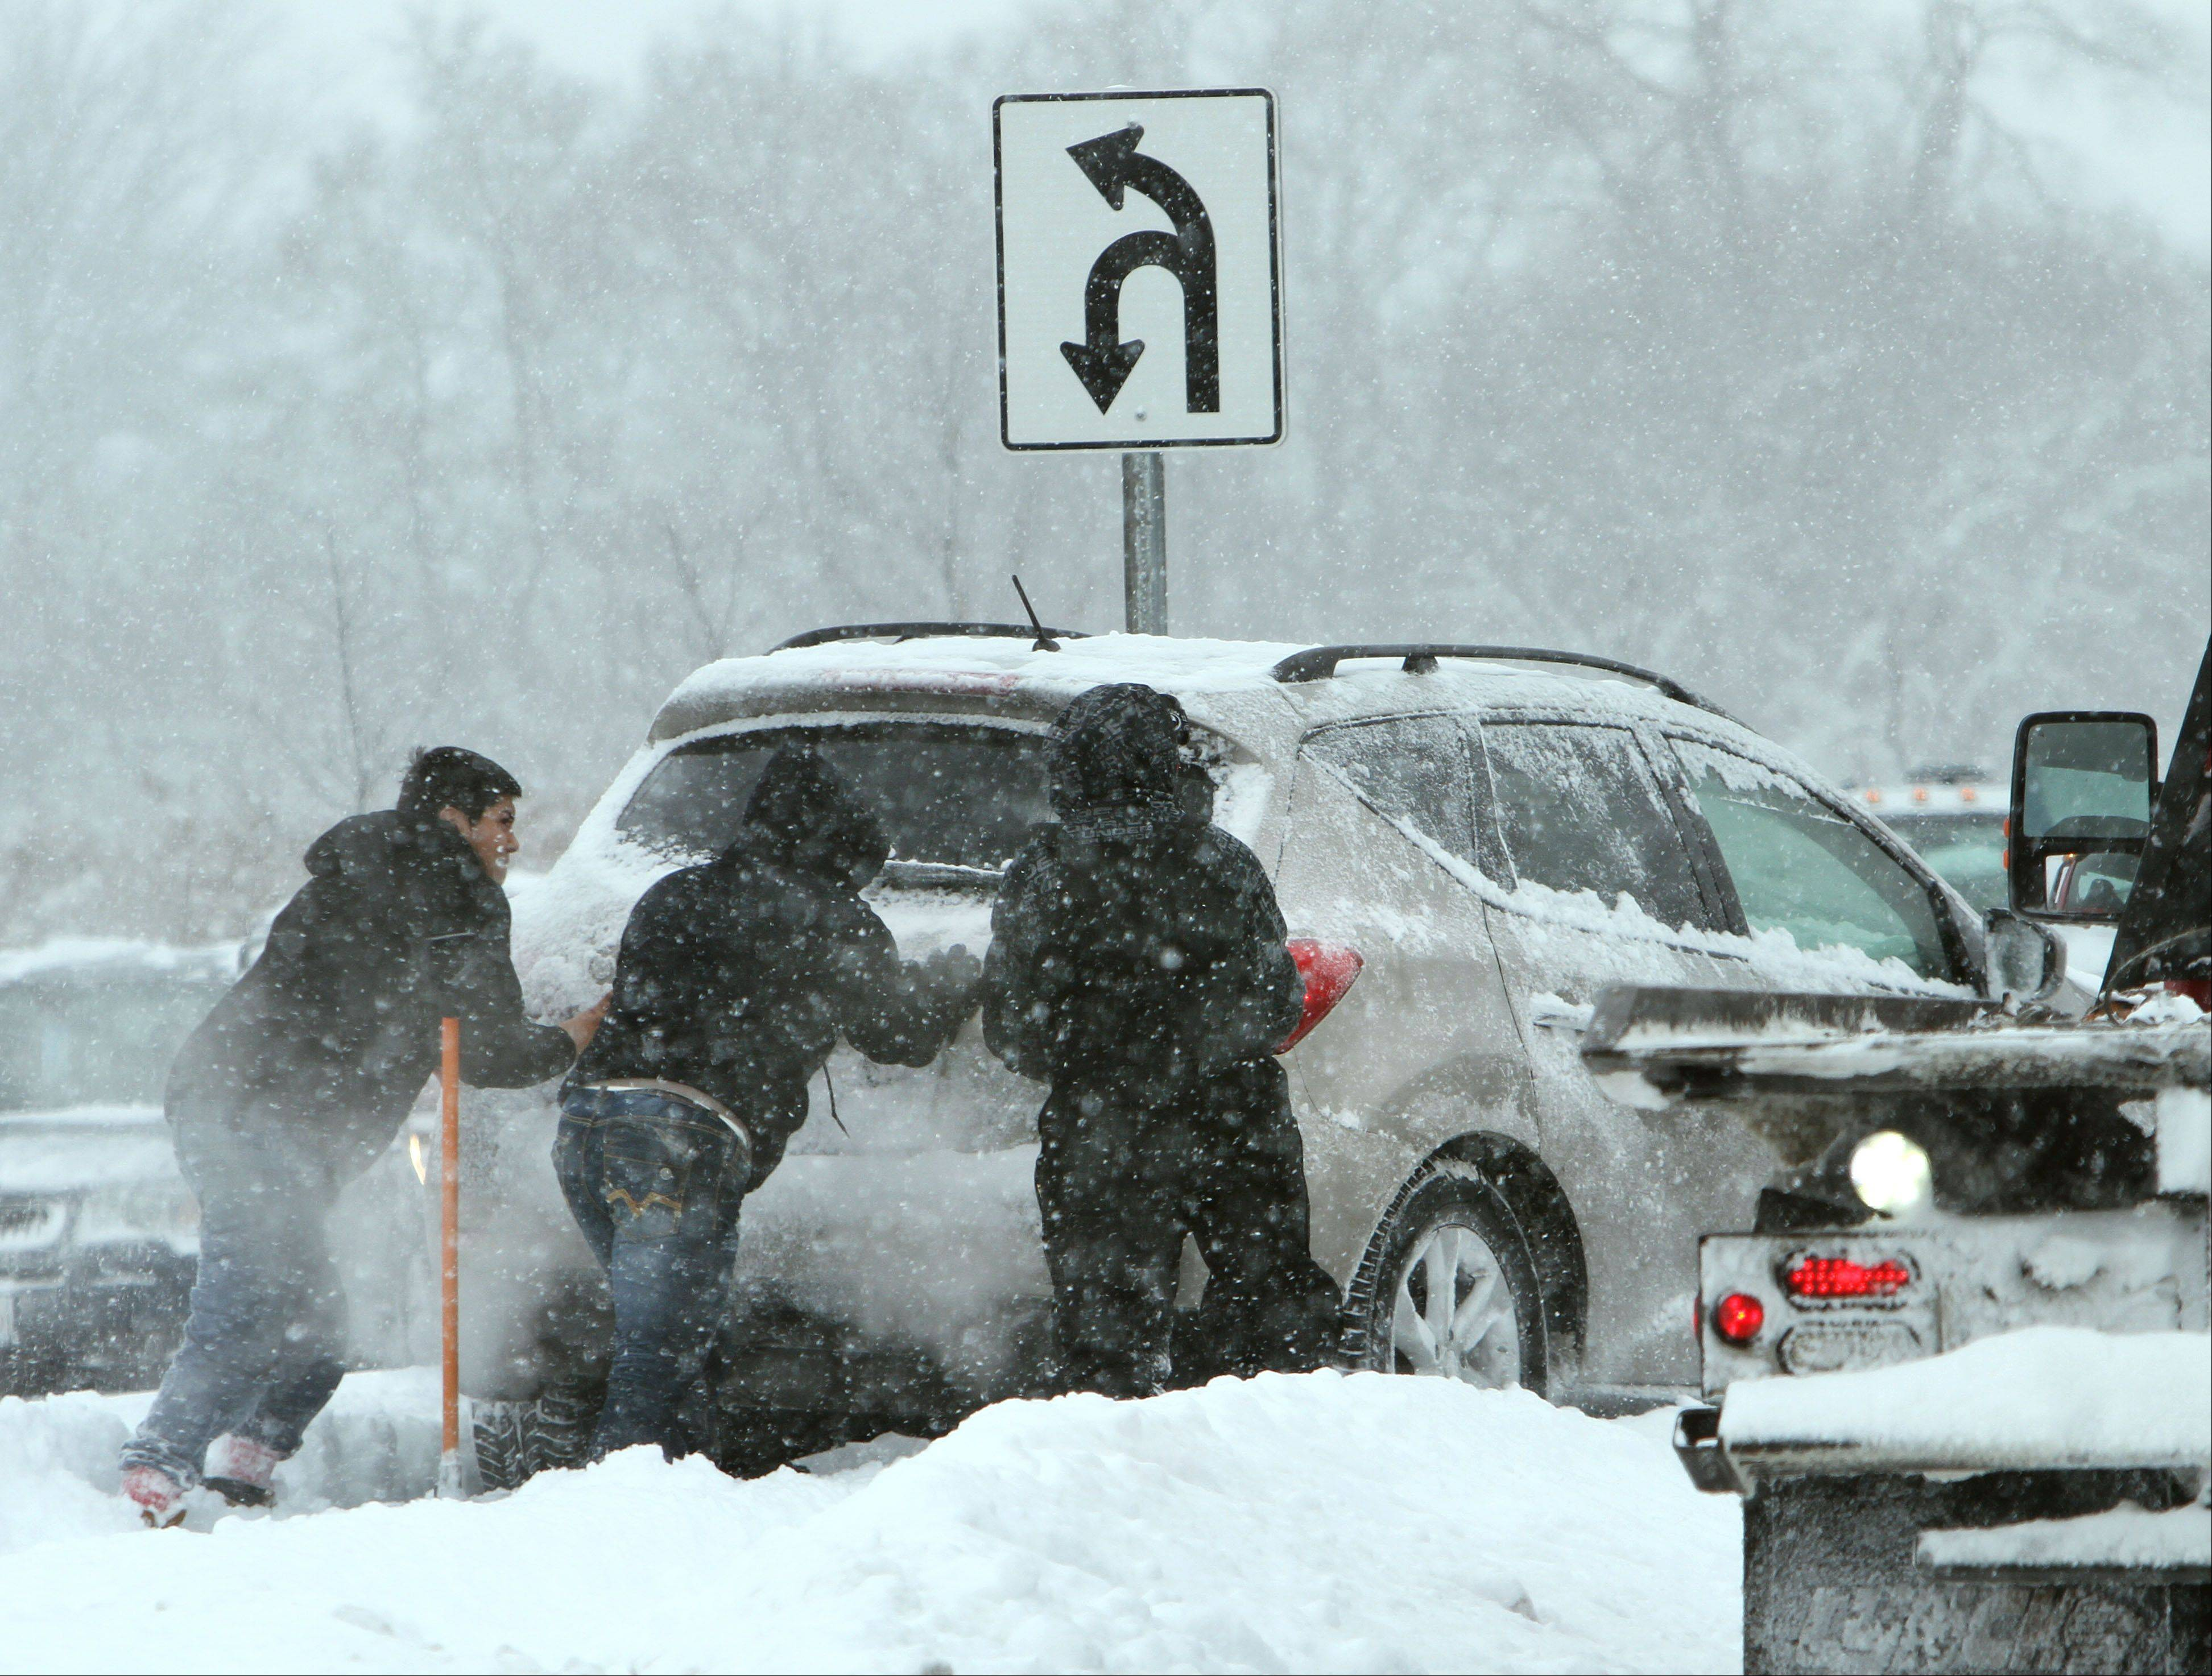 Good samaritans help a woman who lost control and ended up on the median on Route 45 and Center Street in Grayslake Thursday. Heavy snow over the last couple of days has made the roads dangerous.